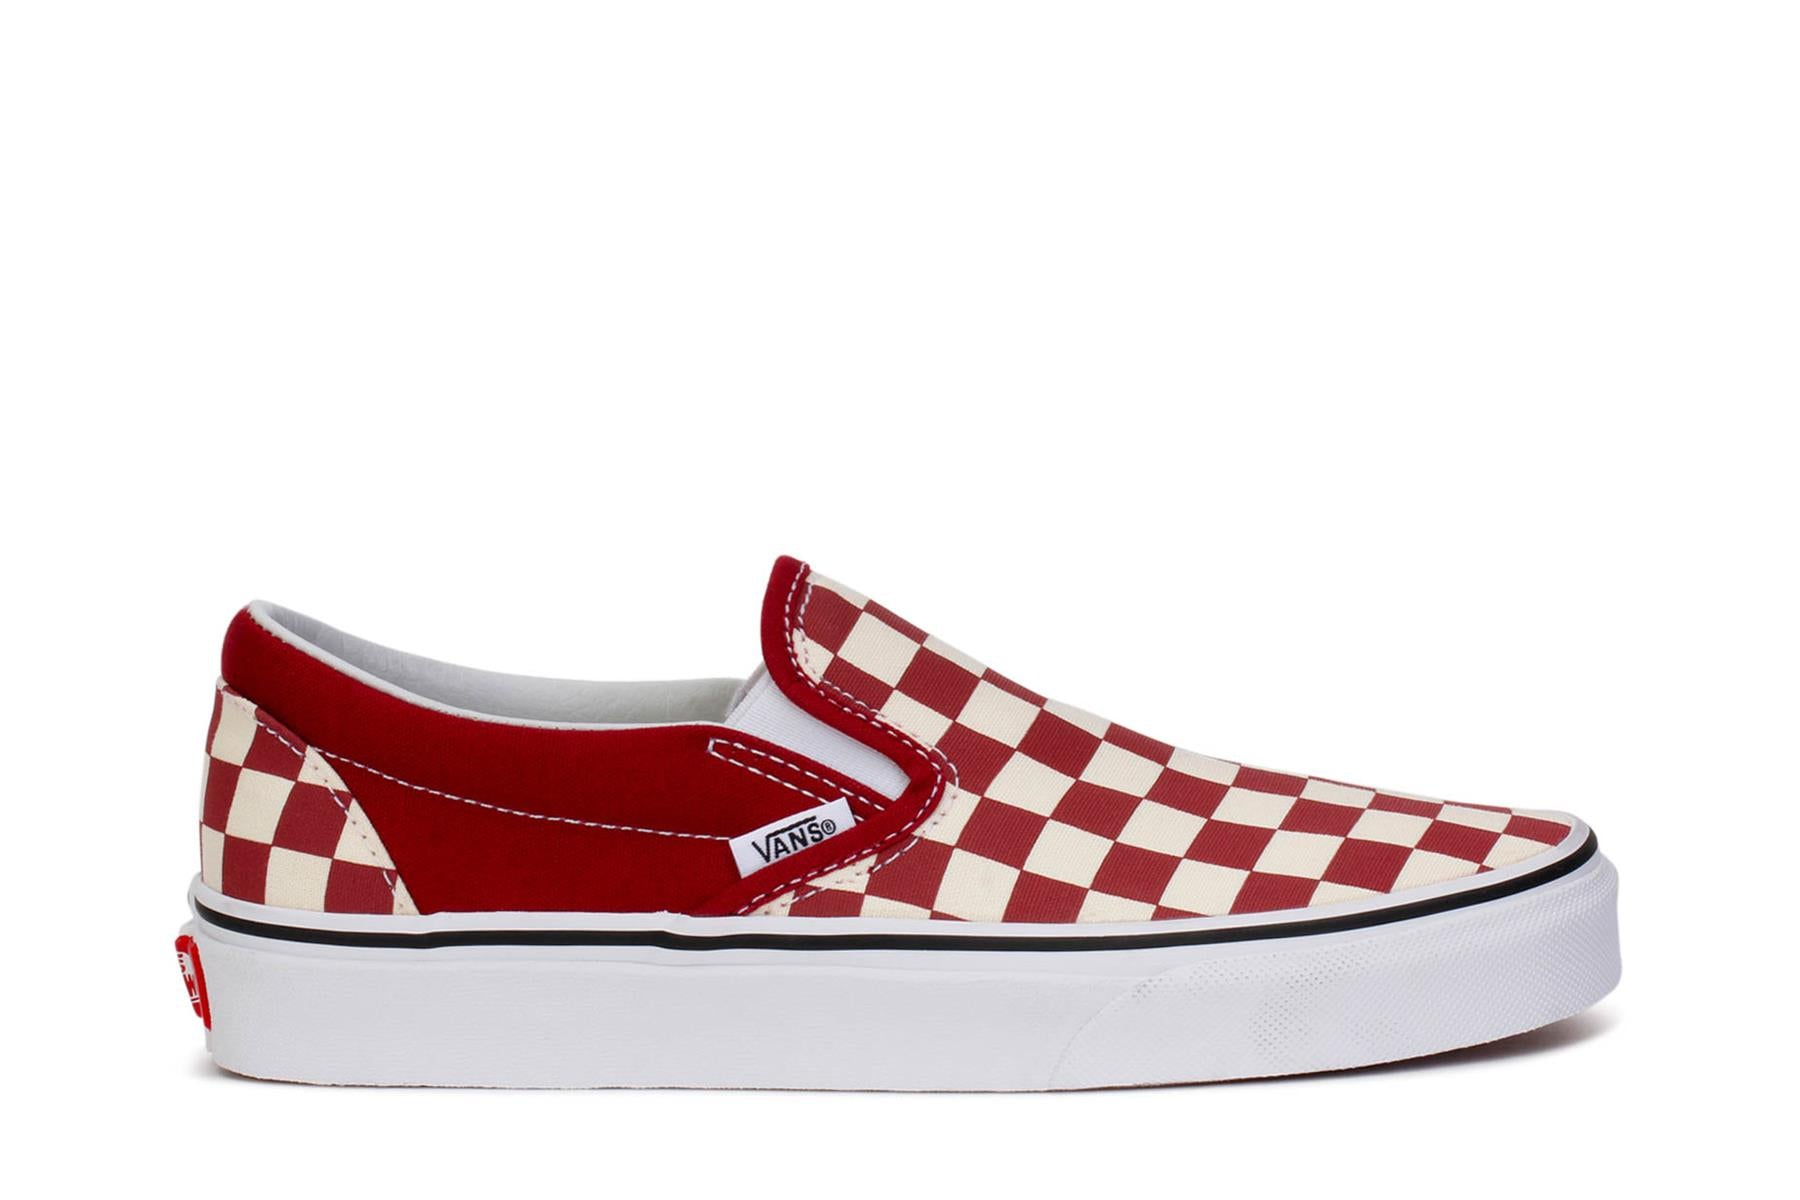 Vans Adult Sneakers Classic Slip-On Checkerboard Rumba Red True White VN0A38F7VLW